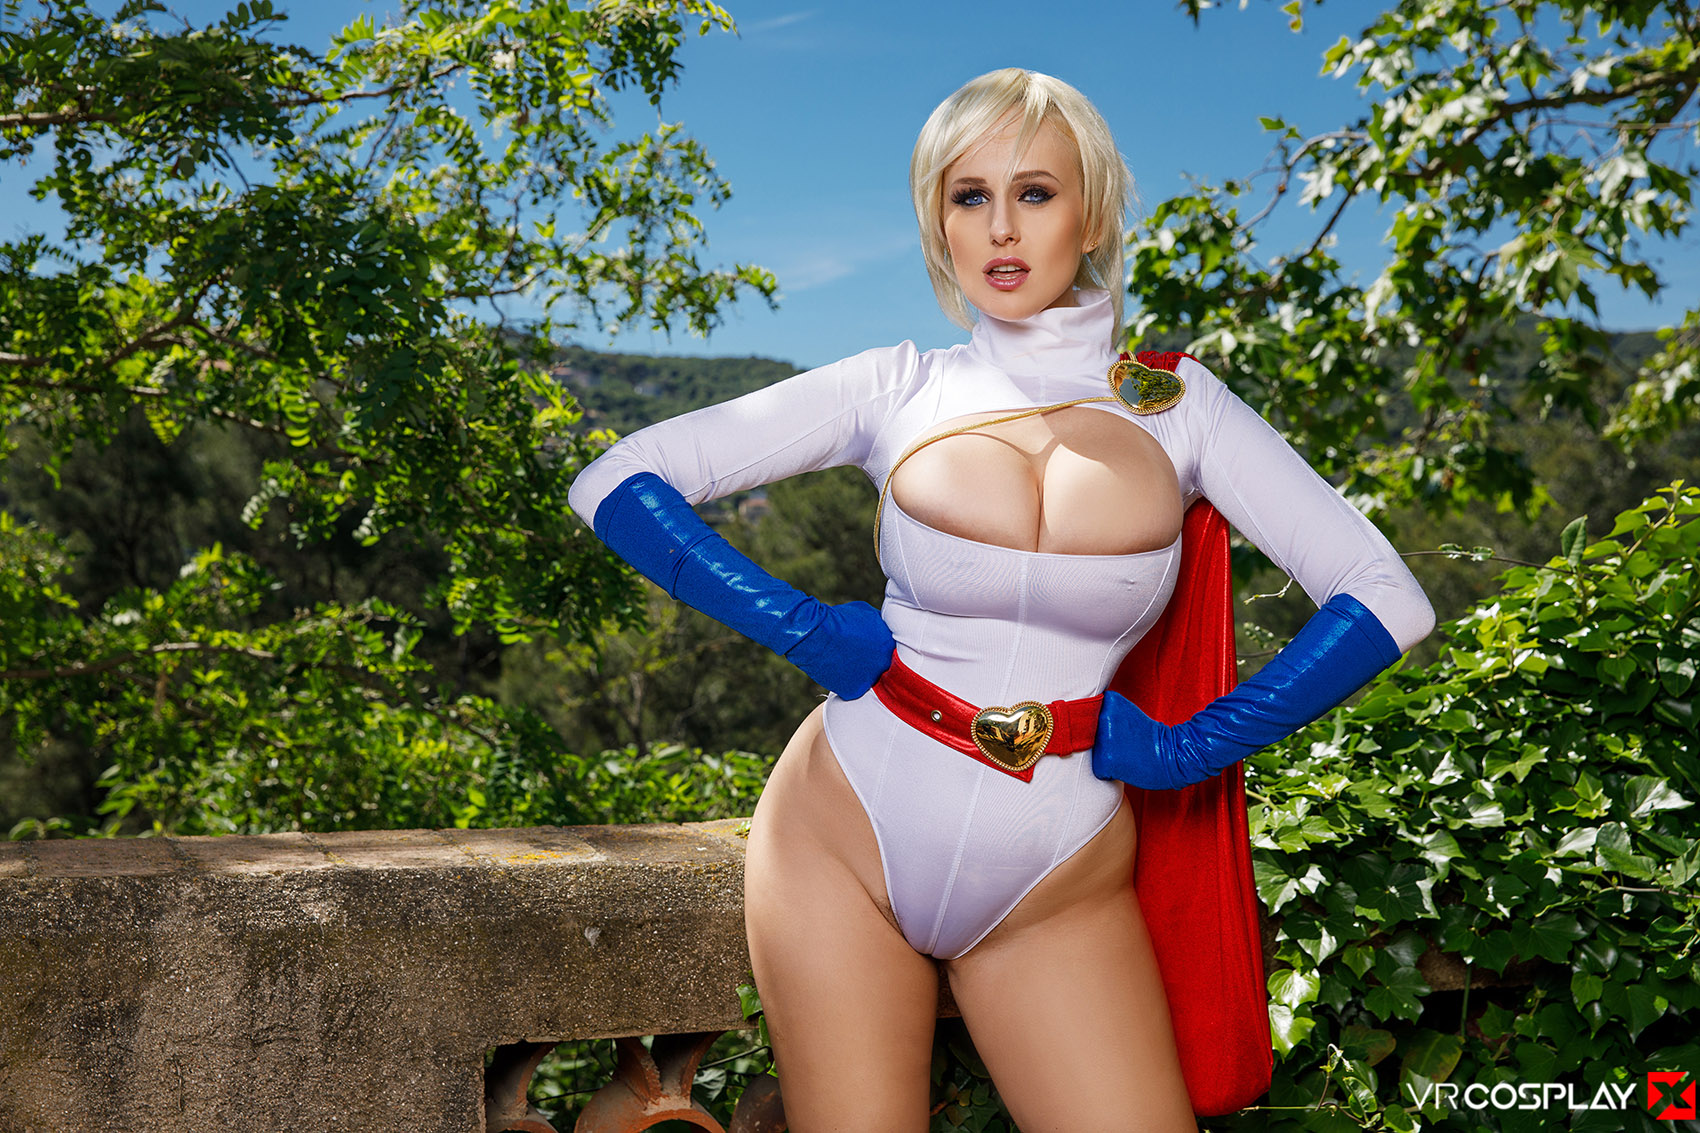 Sexy hermoinie cosplay naked difficult tell